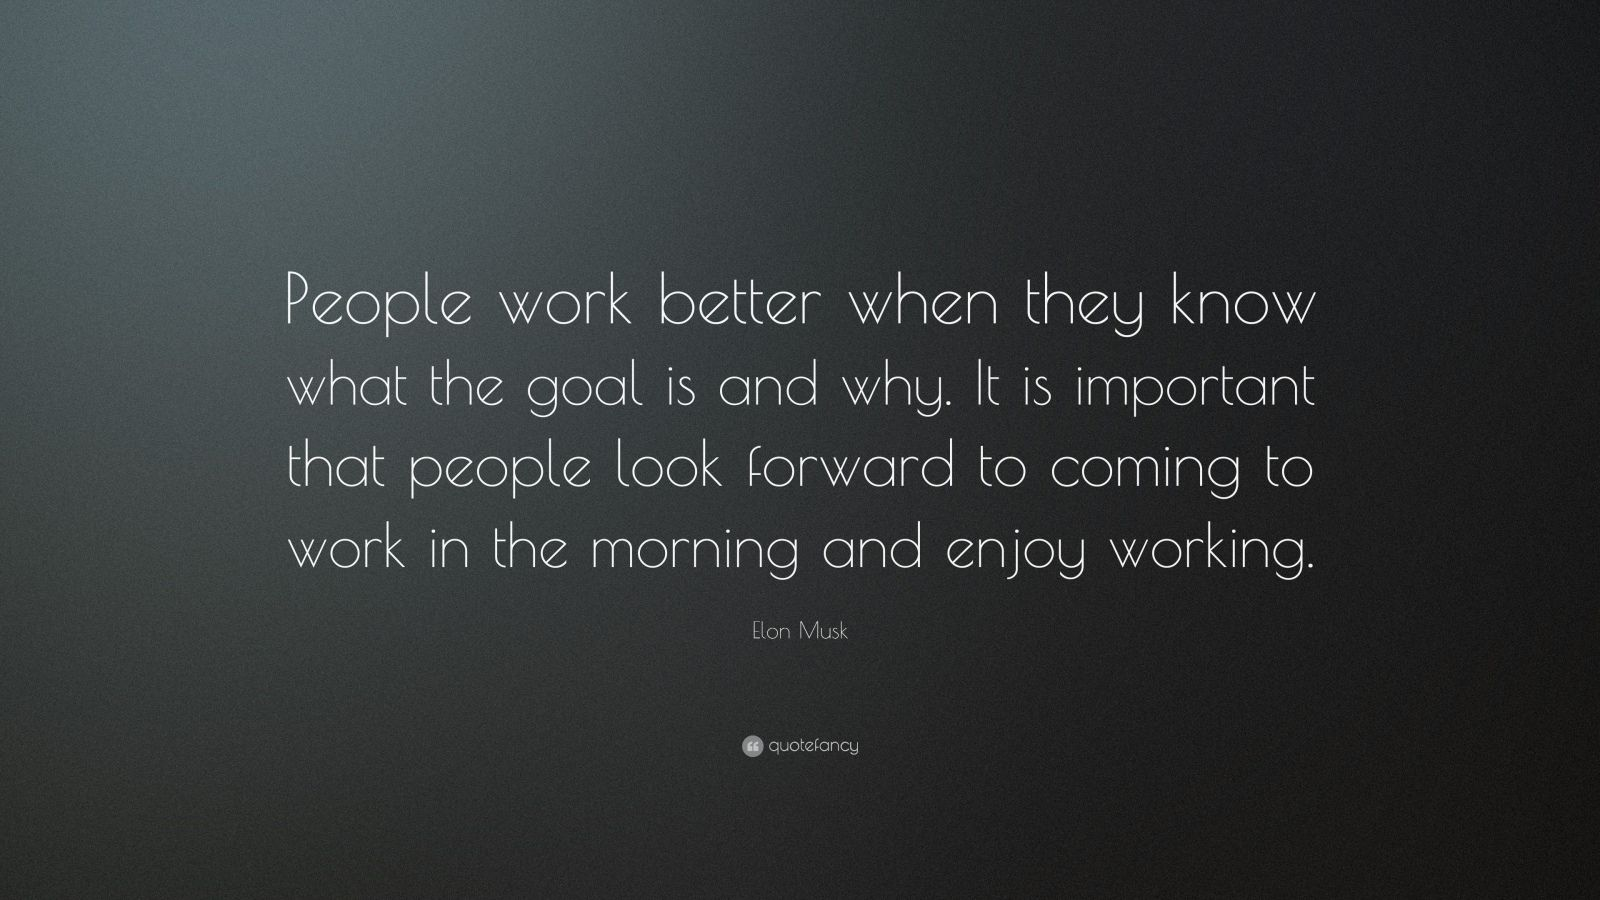 people work better if they are 10 reasons why some people love what they do some people get up each day looking forward to their work what's their secret posted dec 31, 2012.